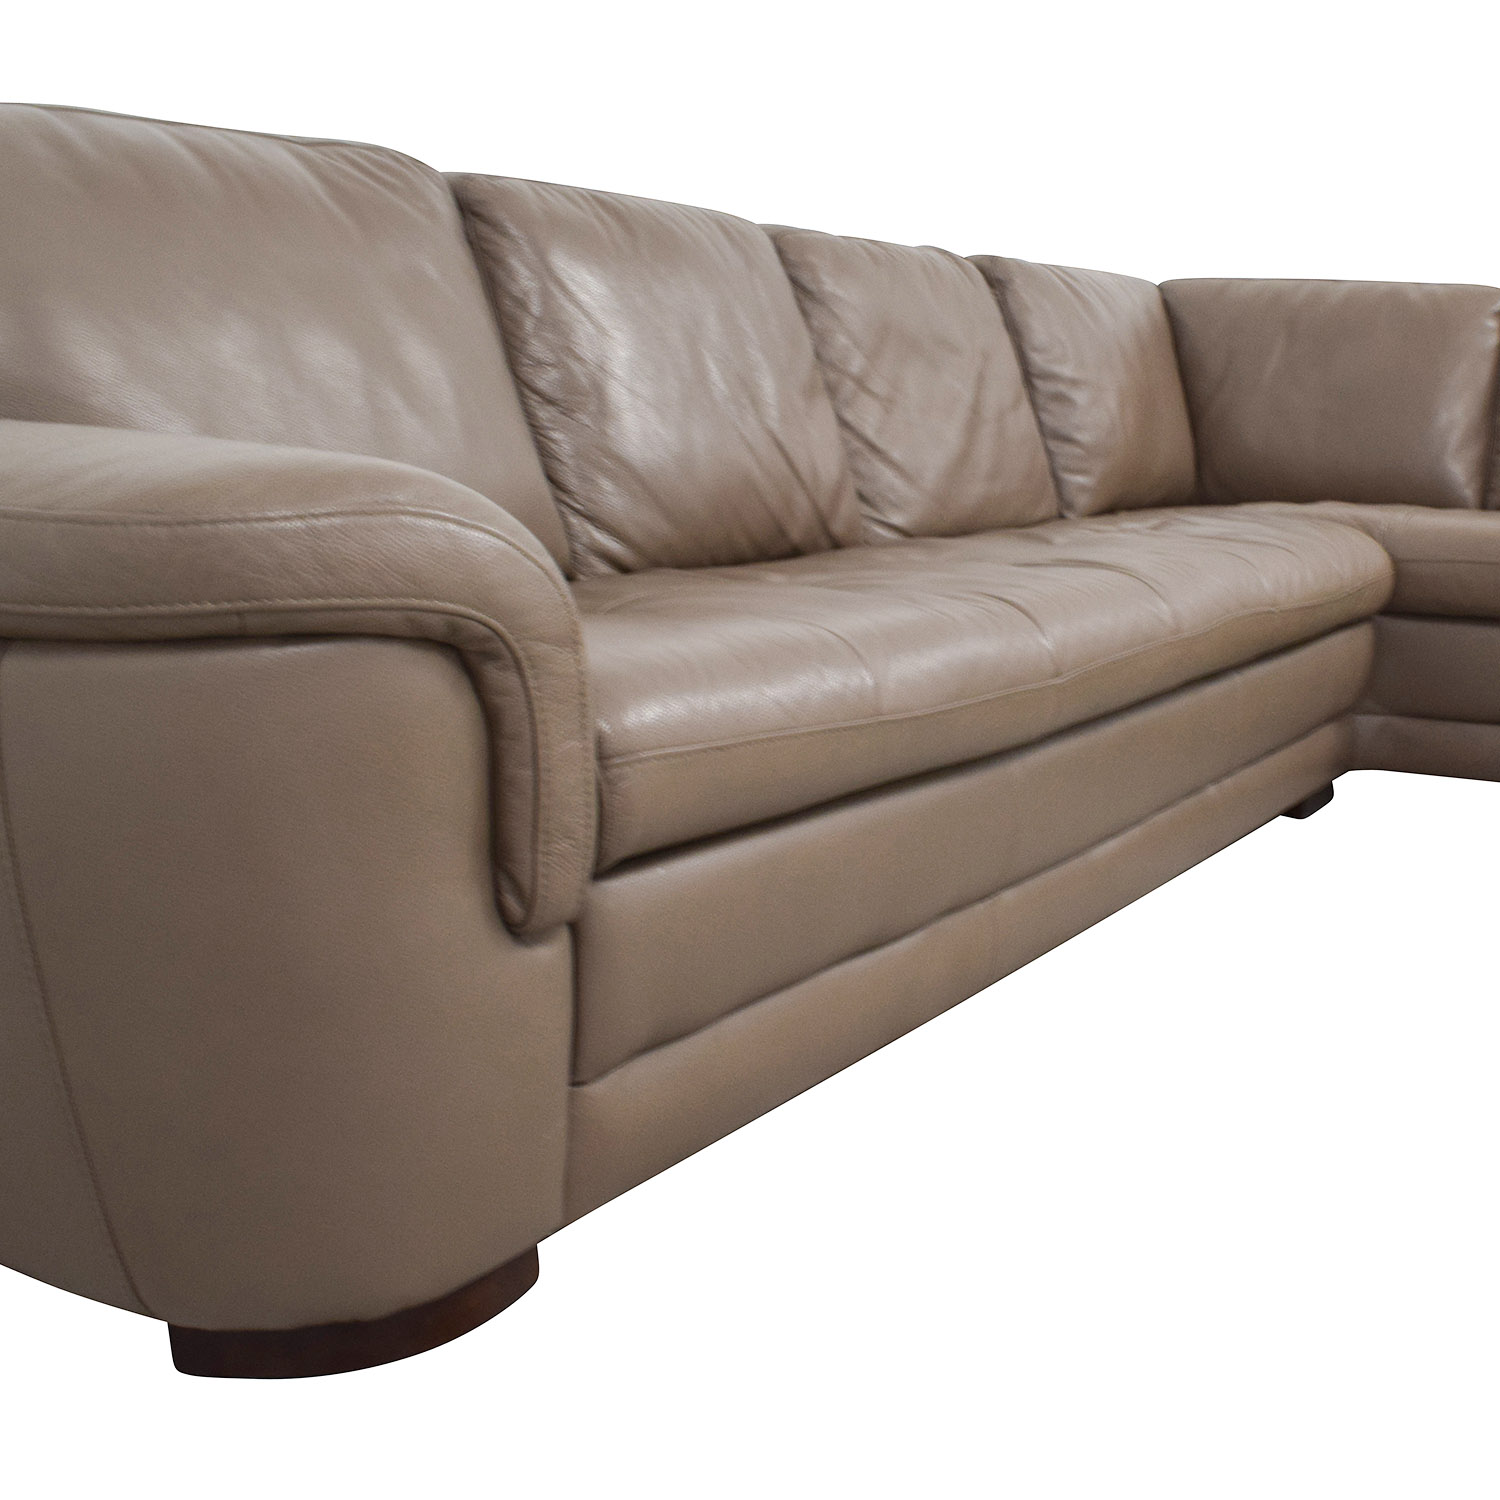 Raymour and Flanigan Raymour & Flanigan Tan Tufted Leather Sectional Sofas